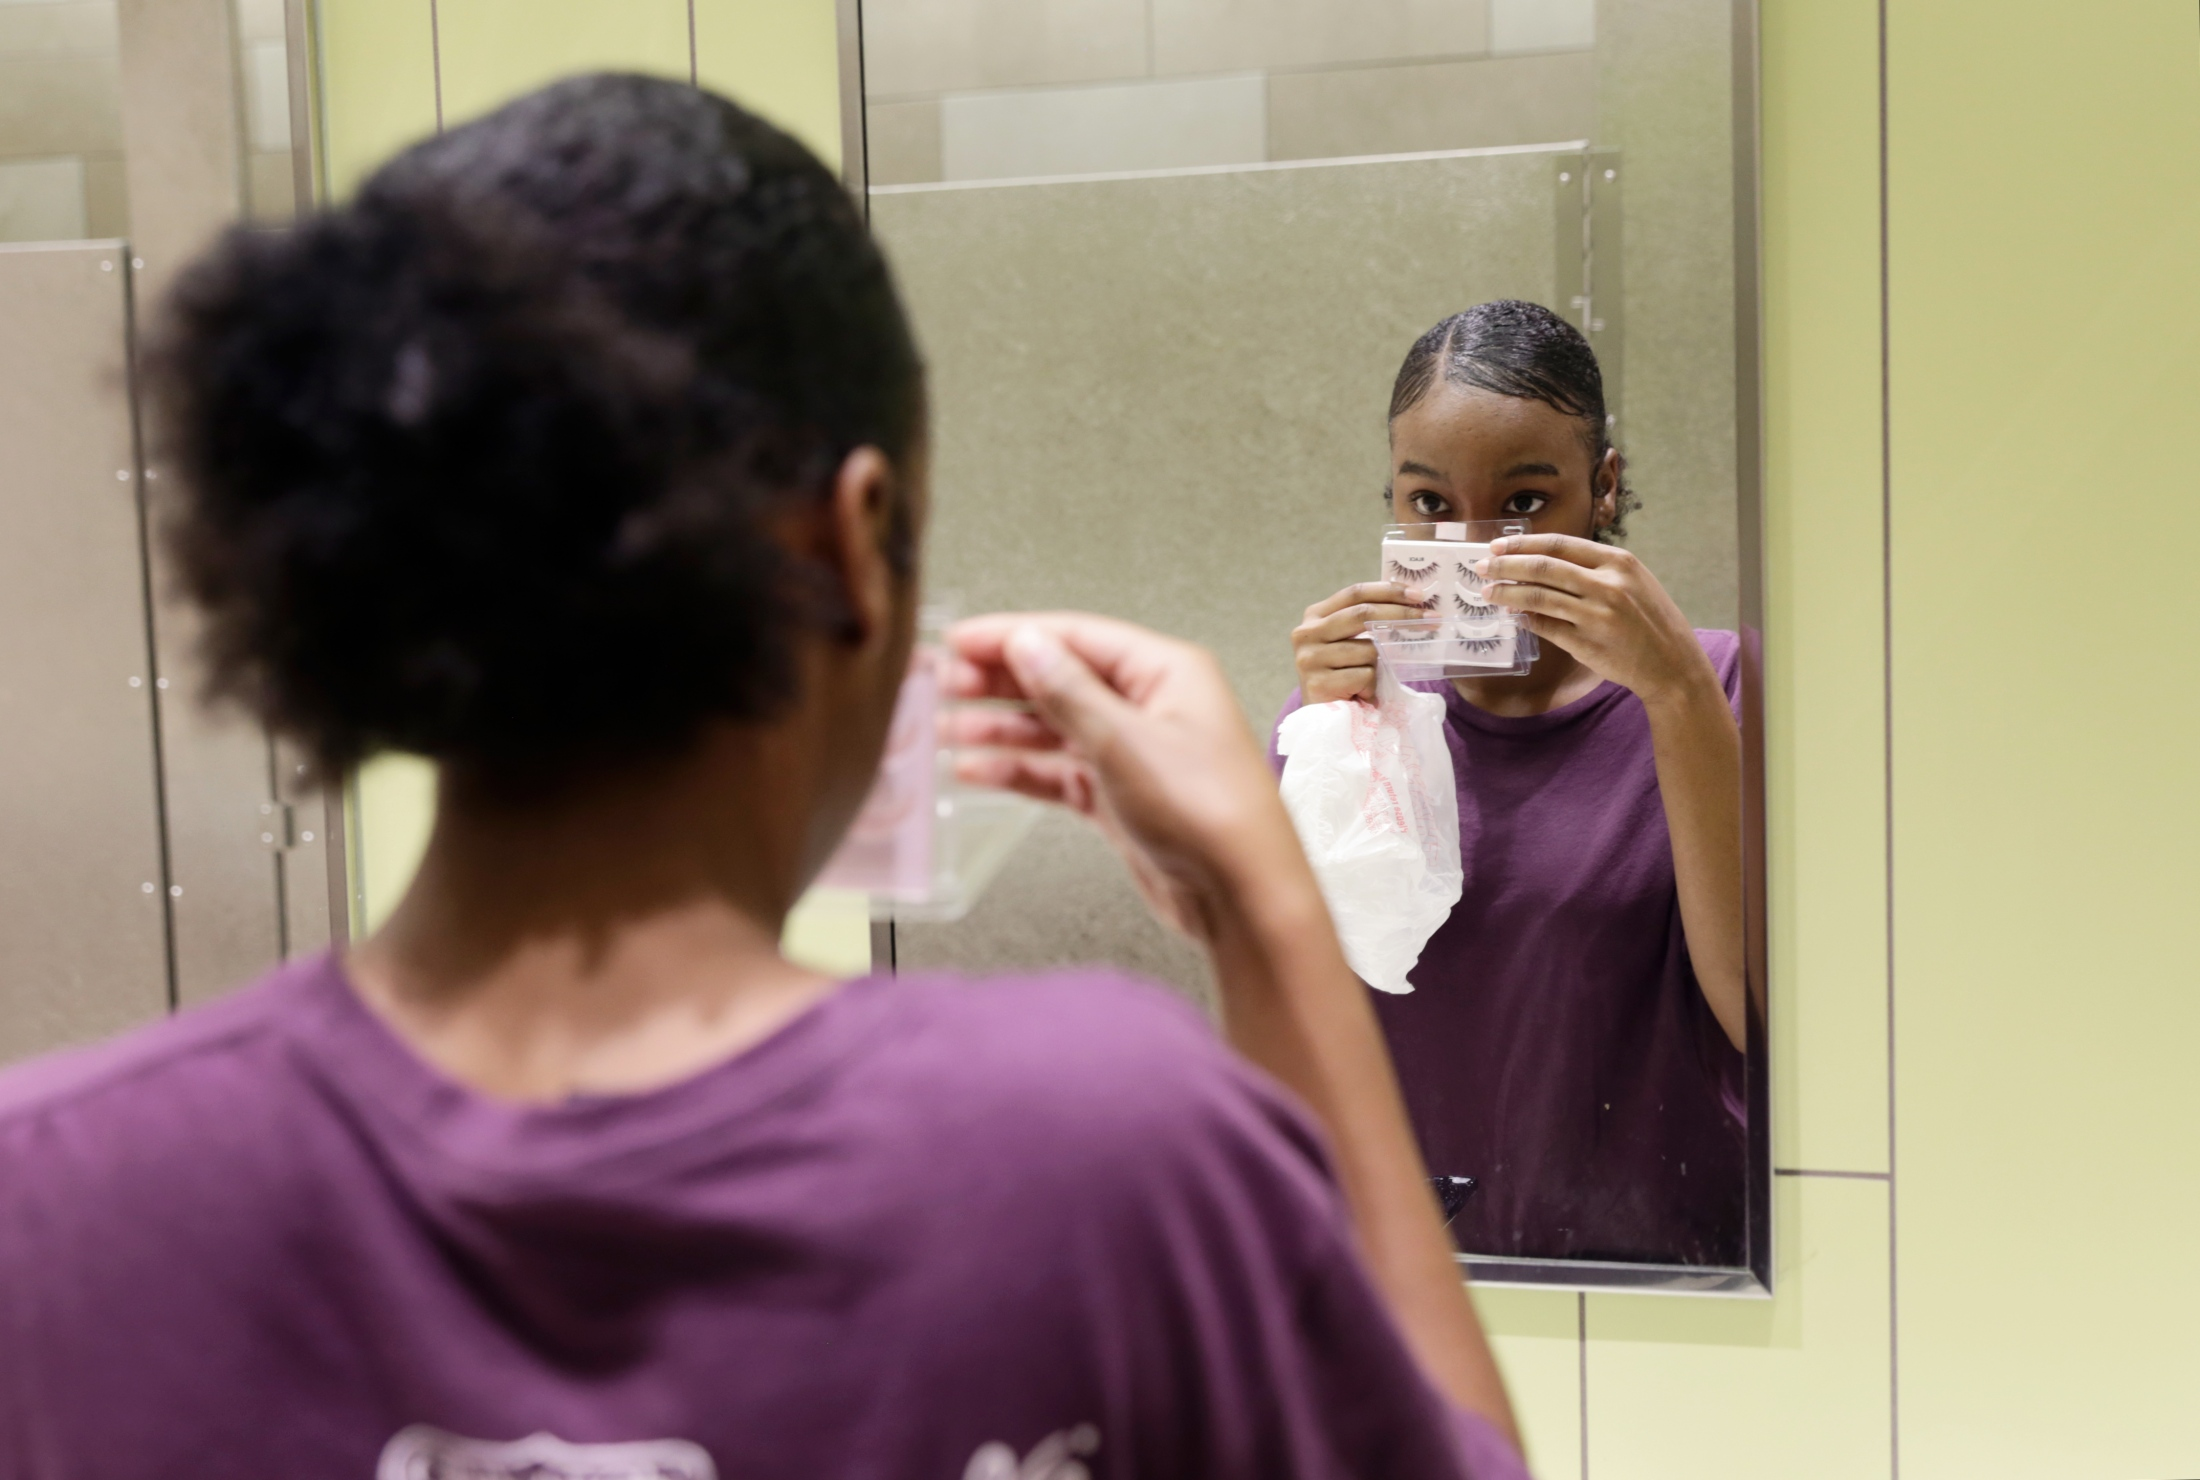 Samiah Williams, of Tallahasseee, Fla., prepares to put on her new eyelashes in the Governor's Square mall bathroom on Aug. 18, 2018, before her shift at Cinnabon. After couch surfing for a year, having been kicked out of her sister's house, Williams has made great strides against the odds, acquiring a job, moving into a transitional living home and enrolling in high school with the help of her Capital City Youth Services street outreach program caseworker.